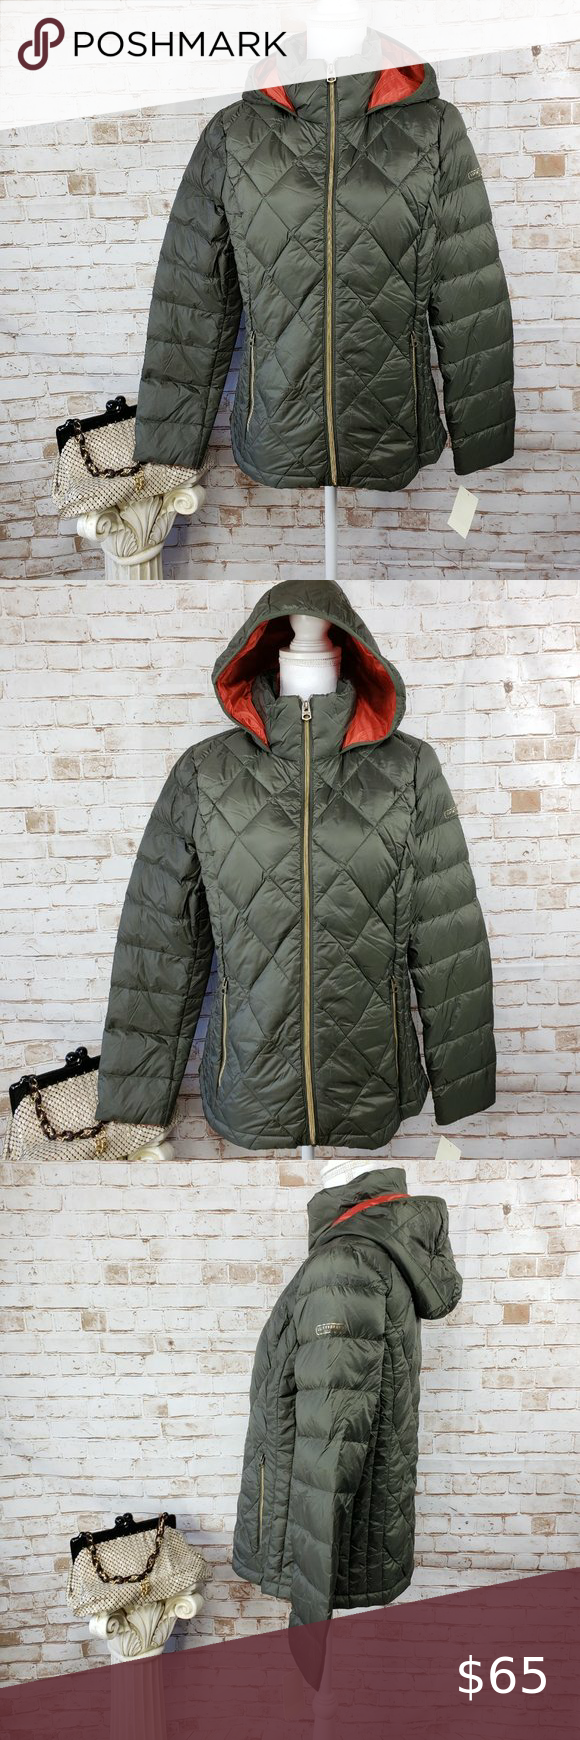 Nwt Lucky Brand Packable Hooded Down Puffer Jacket Lucky Brand Puffer Jackets Puffer [ 1740 x 580 Pixel ]